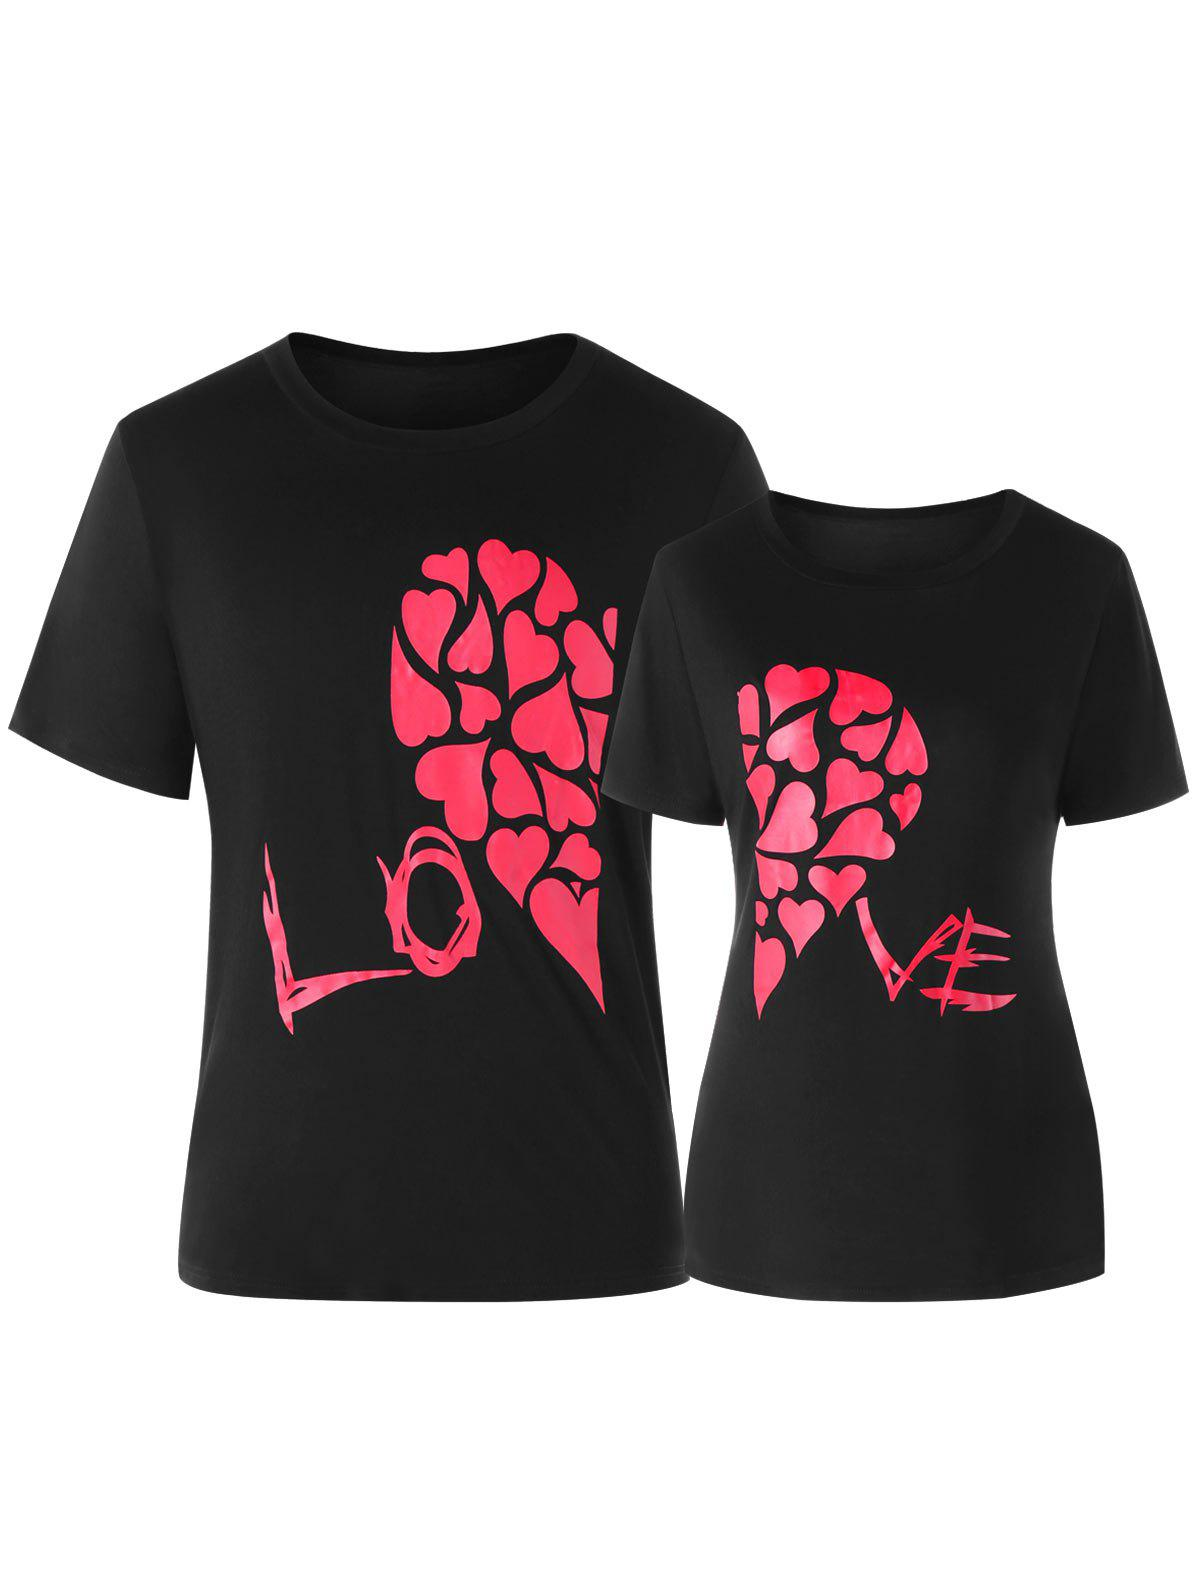 Sale Valentines Day Heart Print Matching Couple Short Sleeve T-shirt